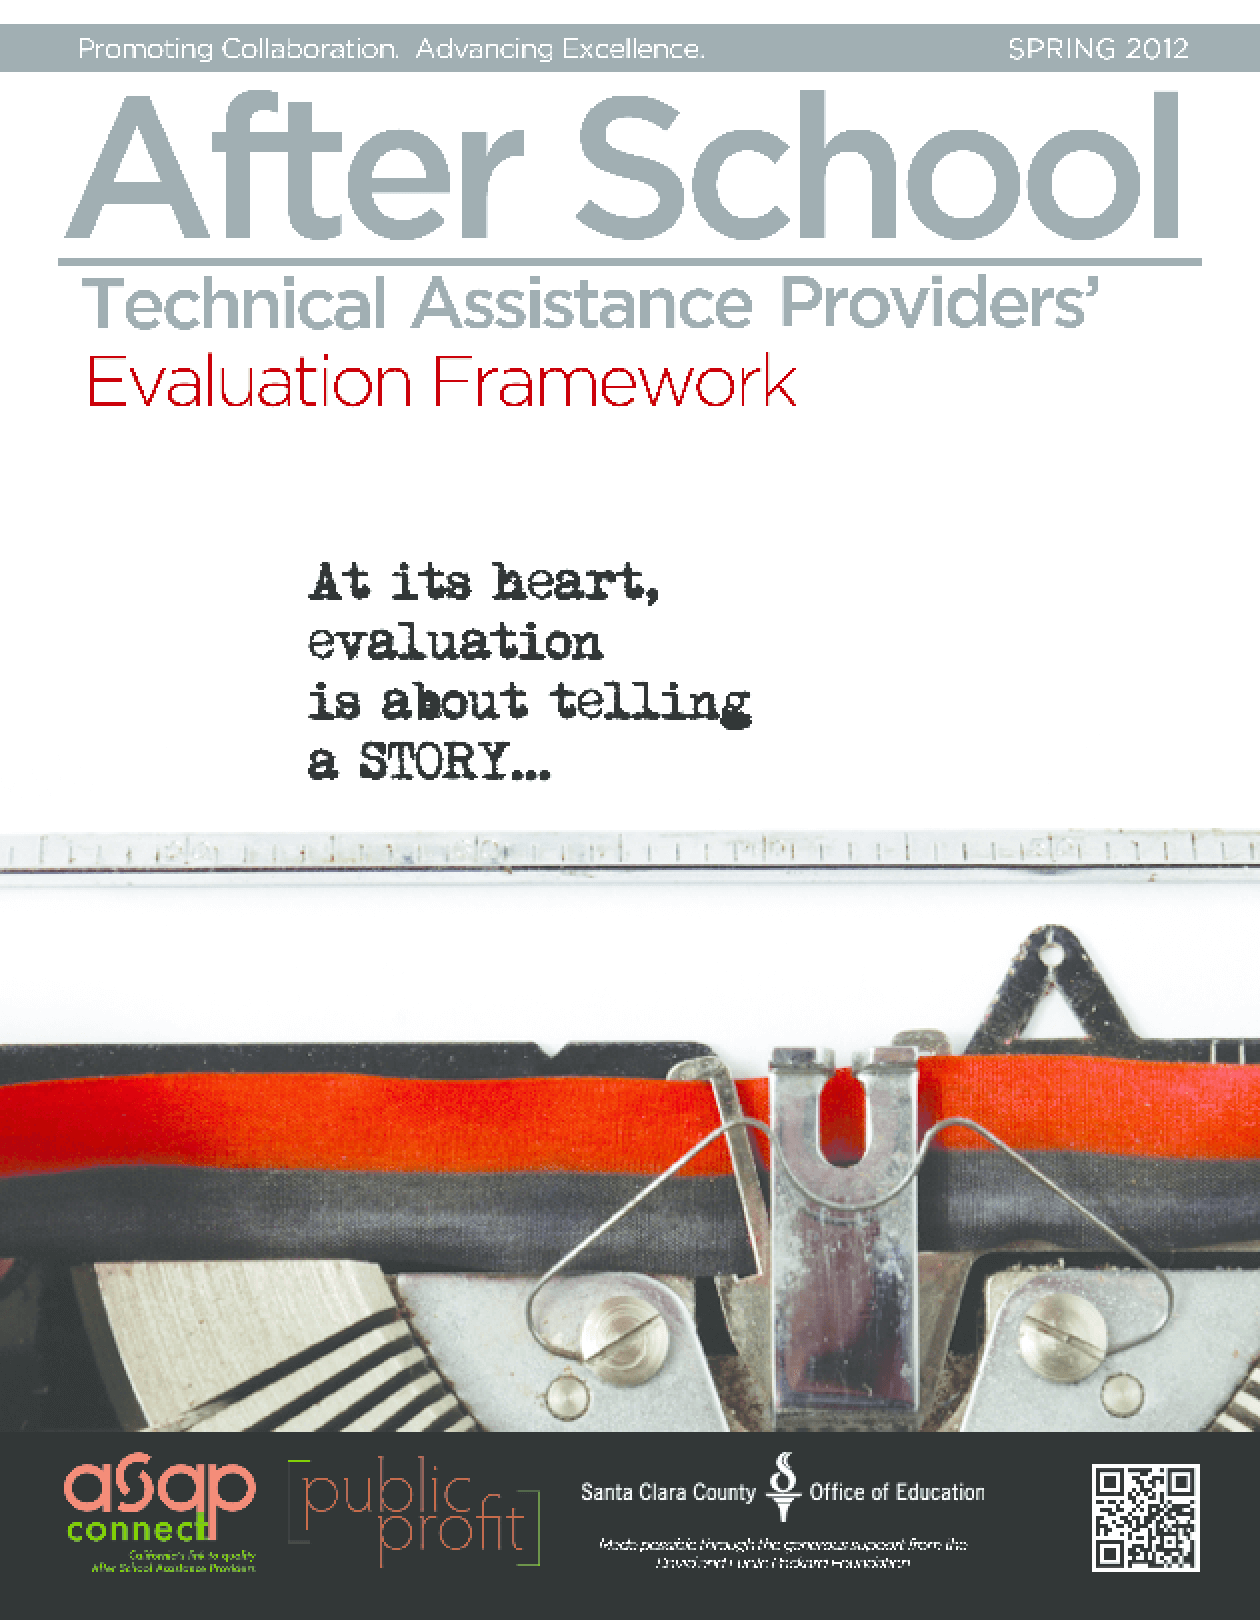 After School Technical Assistance Providers Evaluation Framework